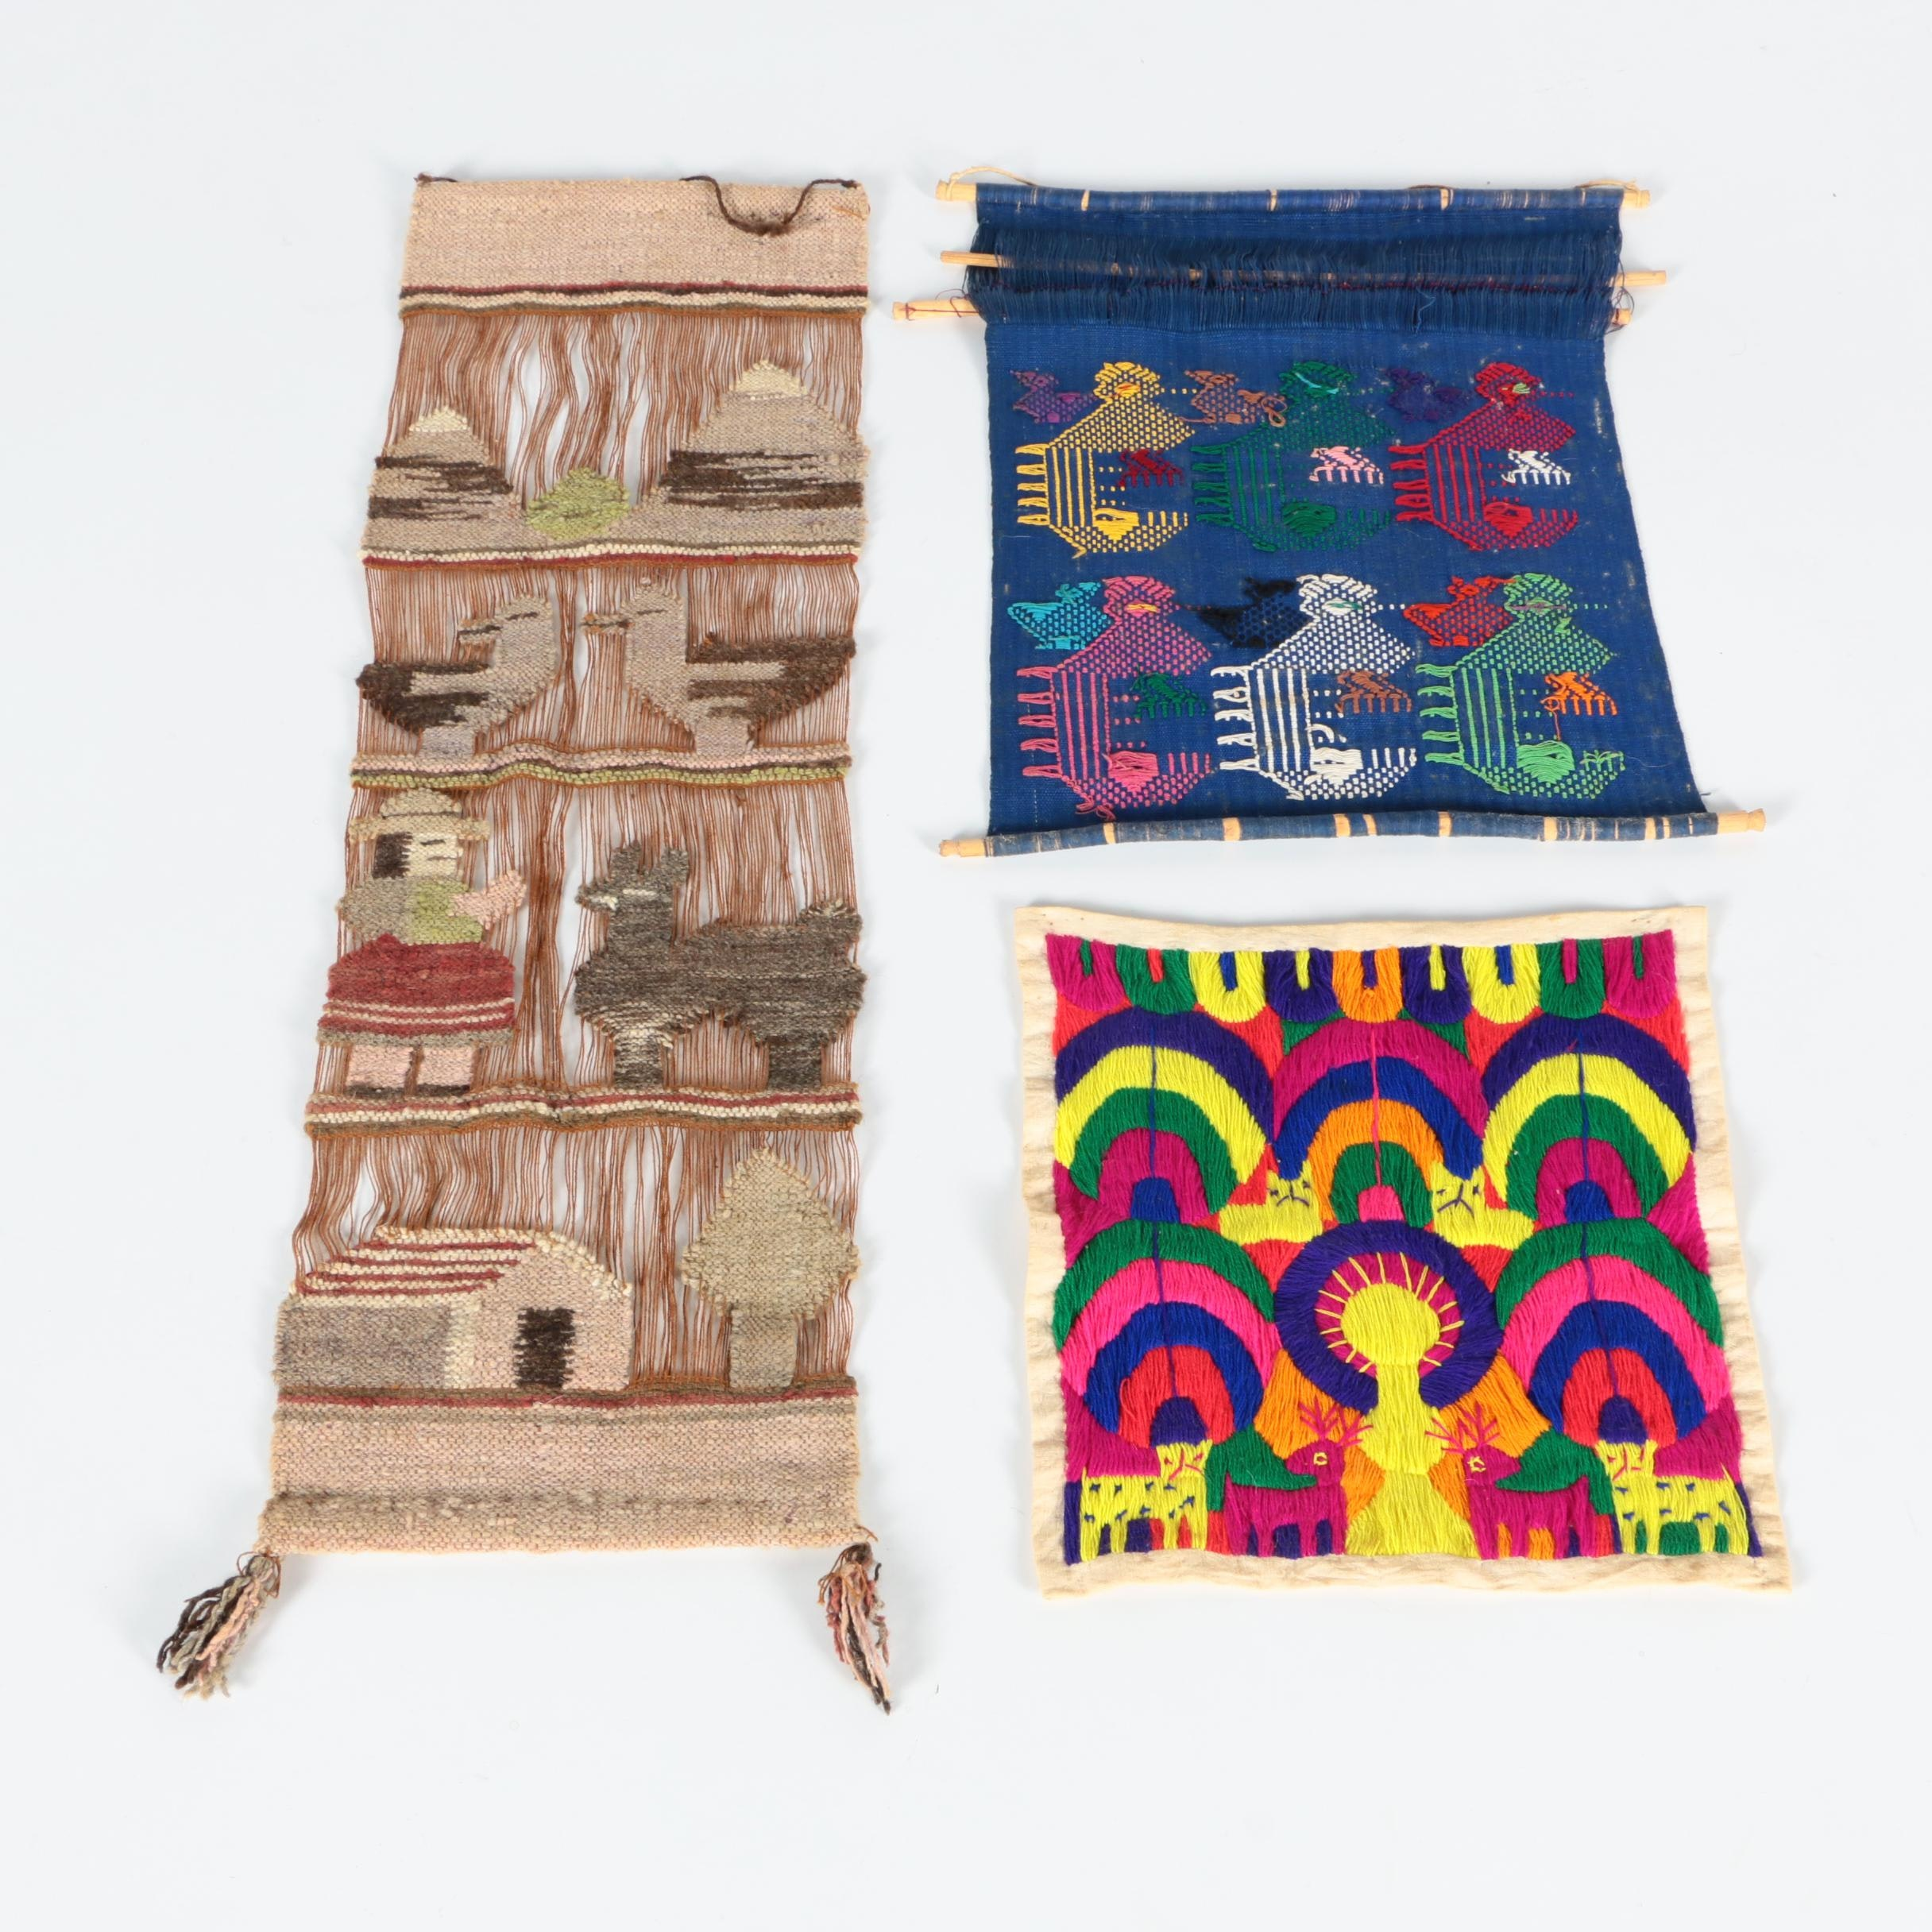 Handwoven and Embroidered Pictorial Wall Hangings